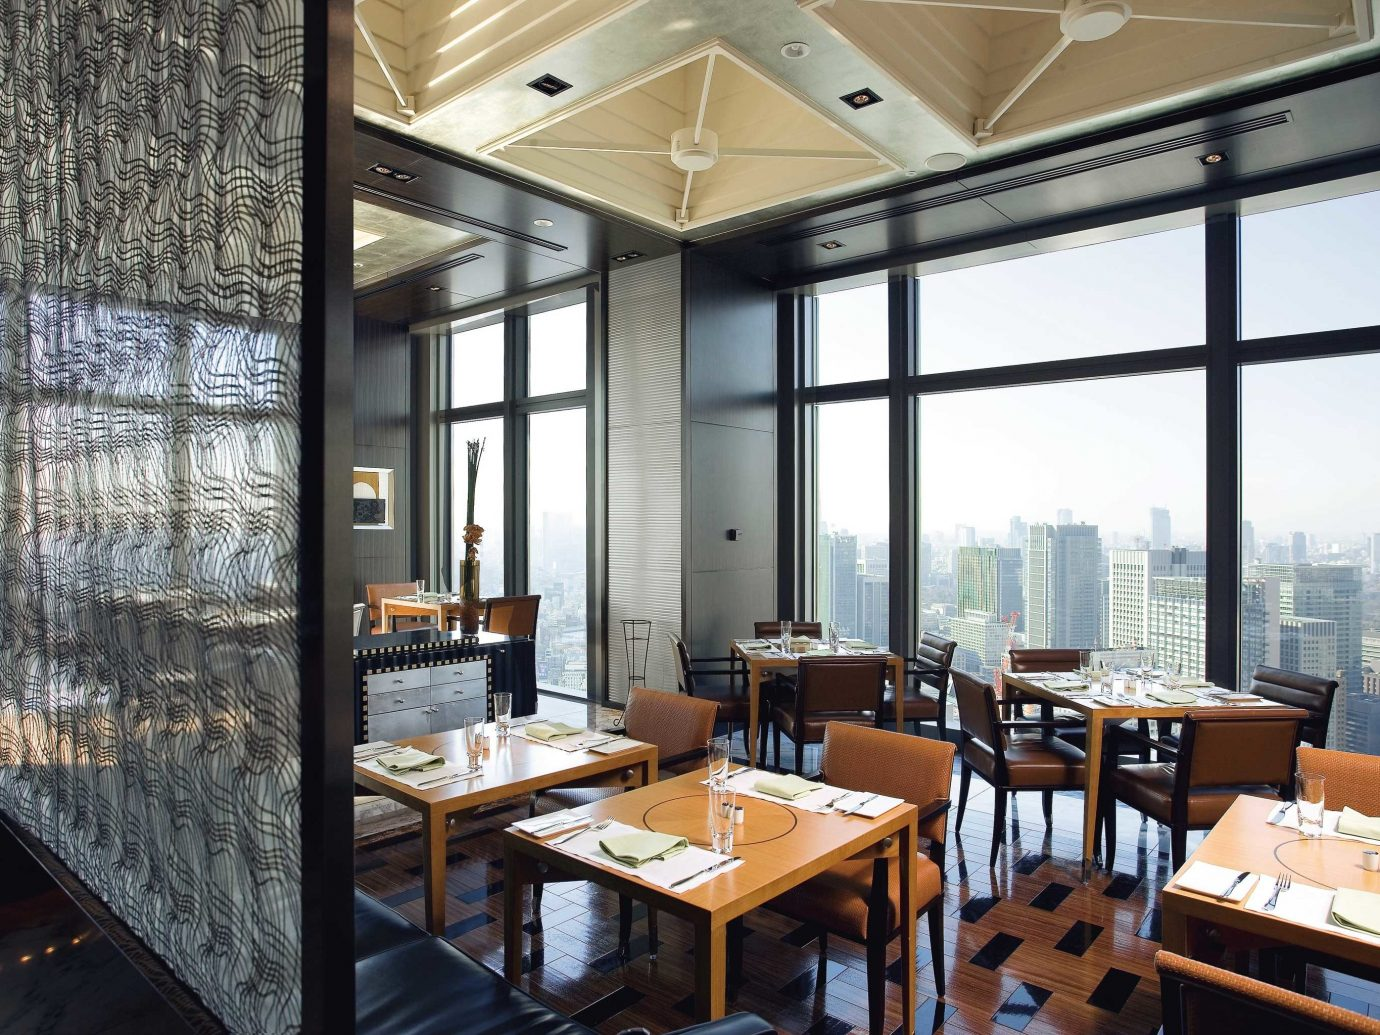 City Dining Drink Eat Elegant Hotels Luxury Modern Scenic views window table indoor property room interior design restaurant real estate Design office condominium window covering overlooking furniture